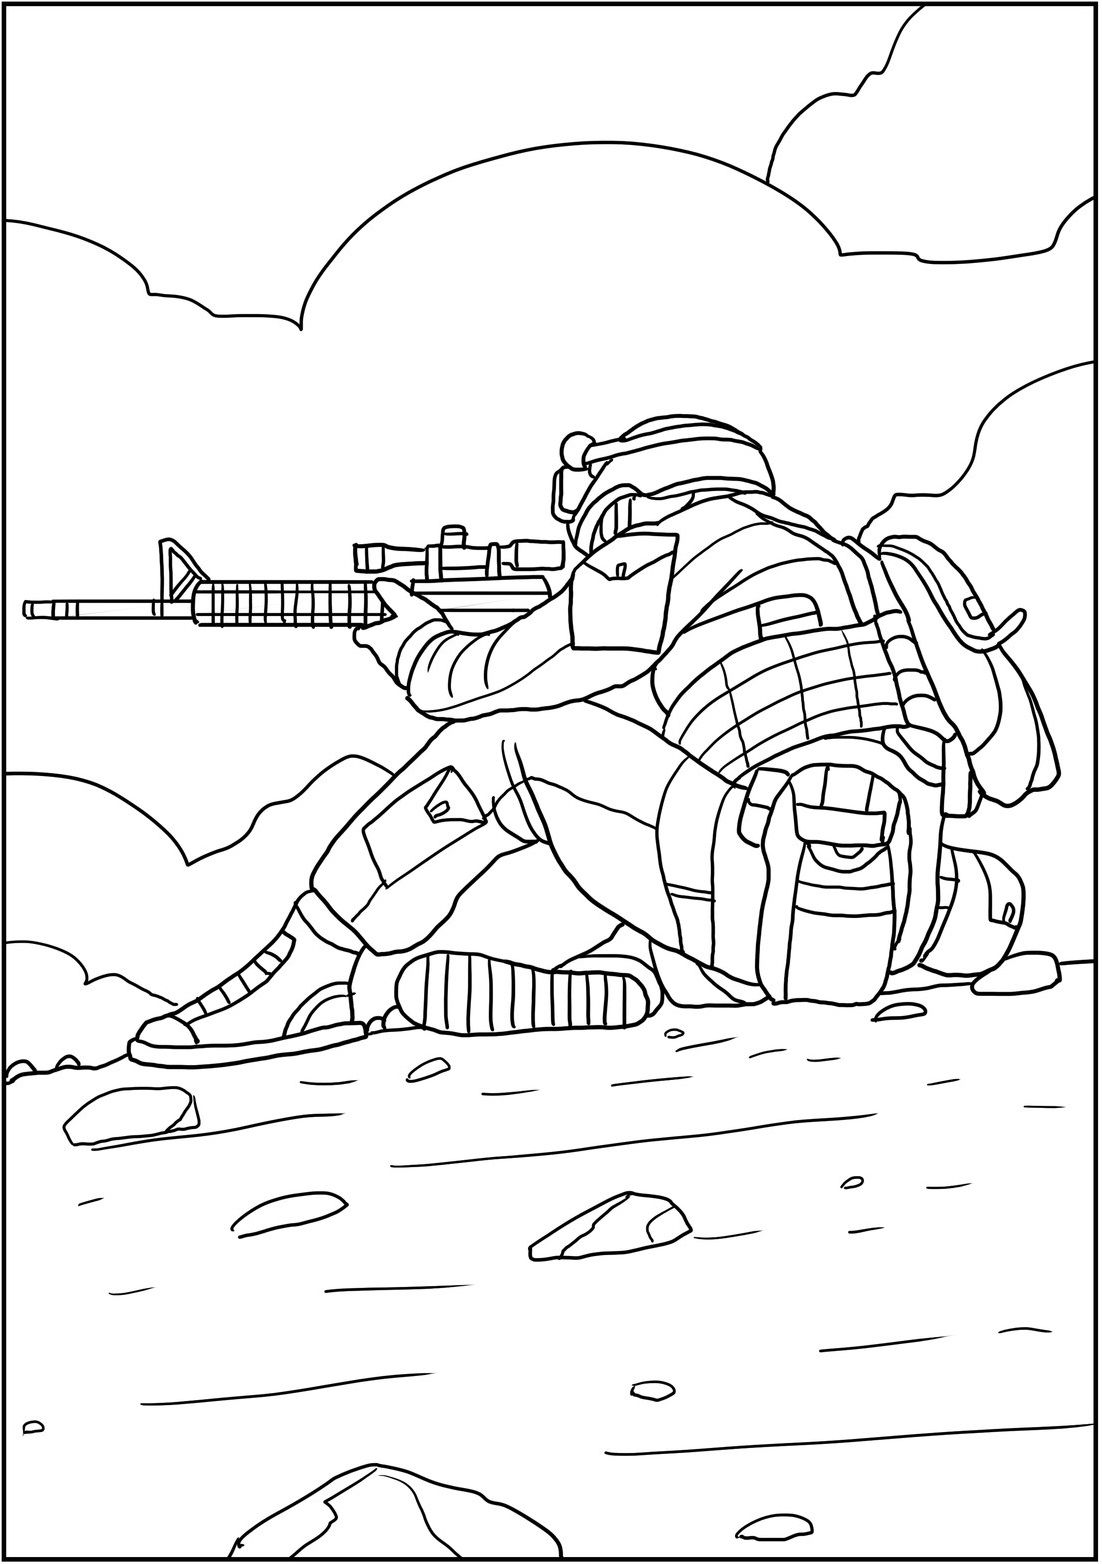 Brave men in combat scenes. Coloring book with sketches of ...